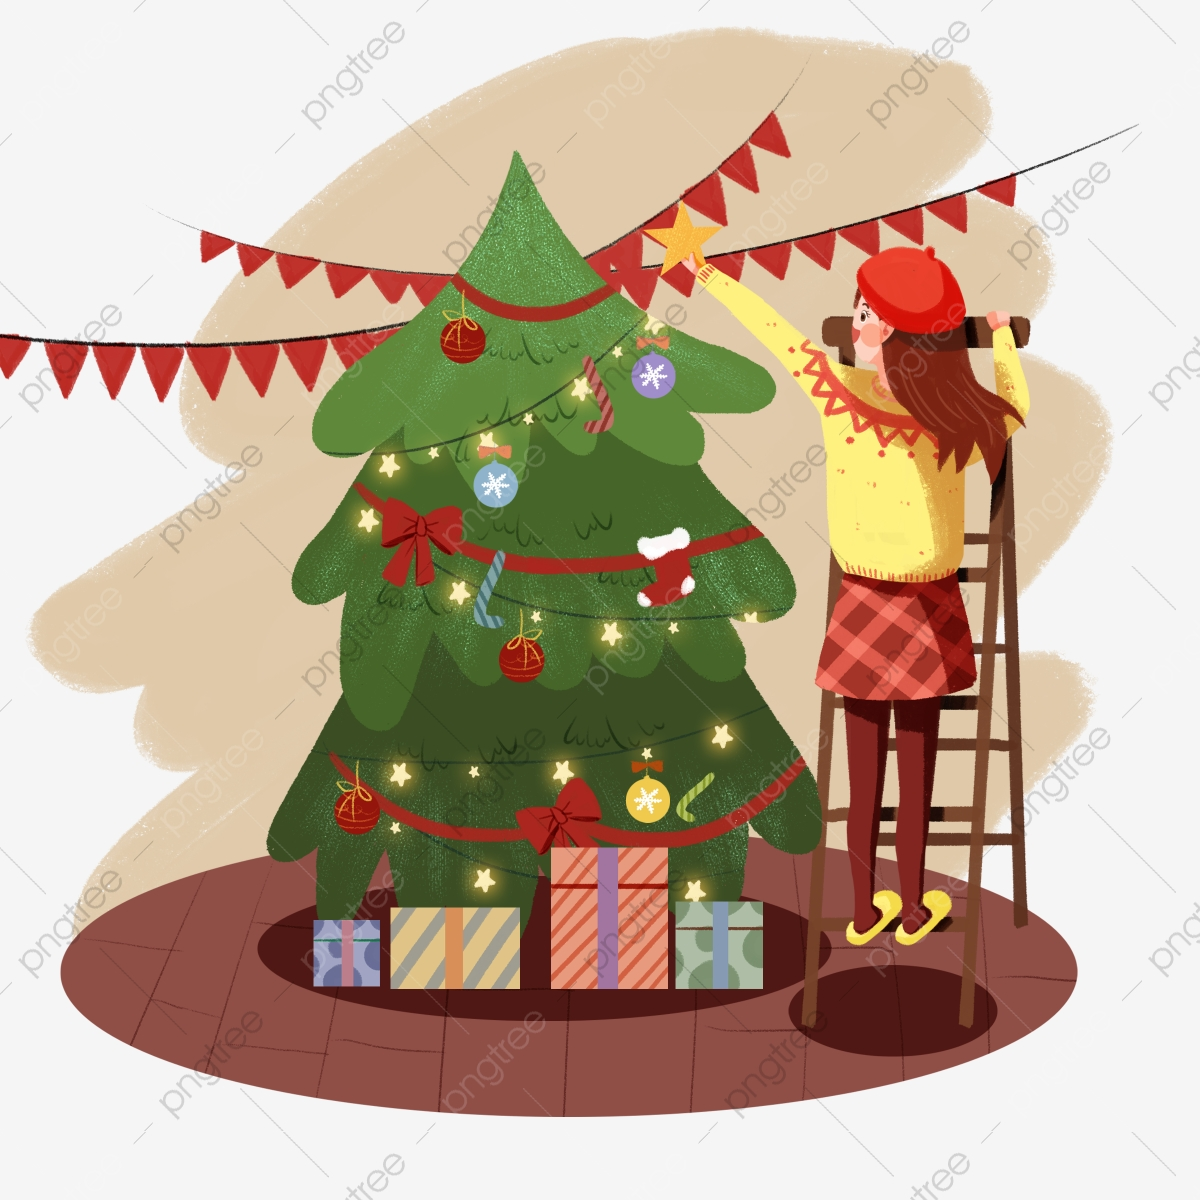 Tall Christmas Tree Cartoon.Green Christmas Tree Red Flag Tall Ladder Beautiful